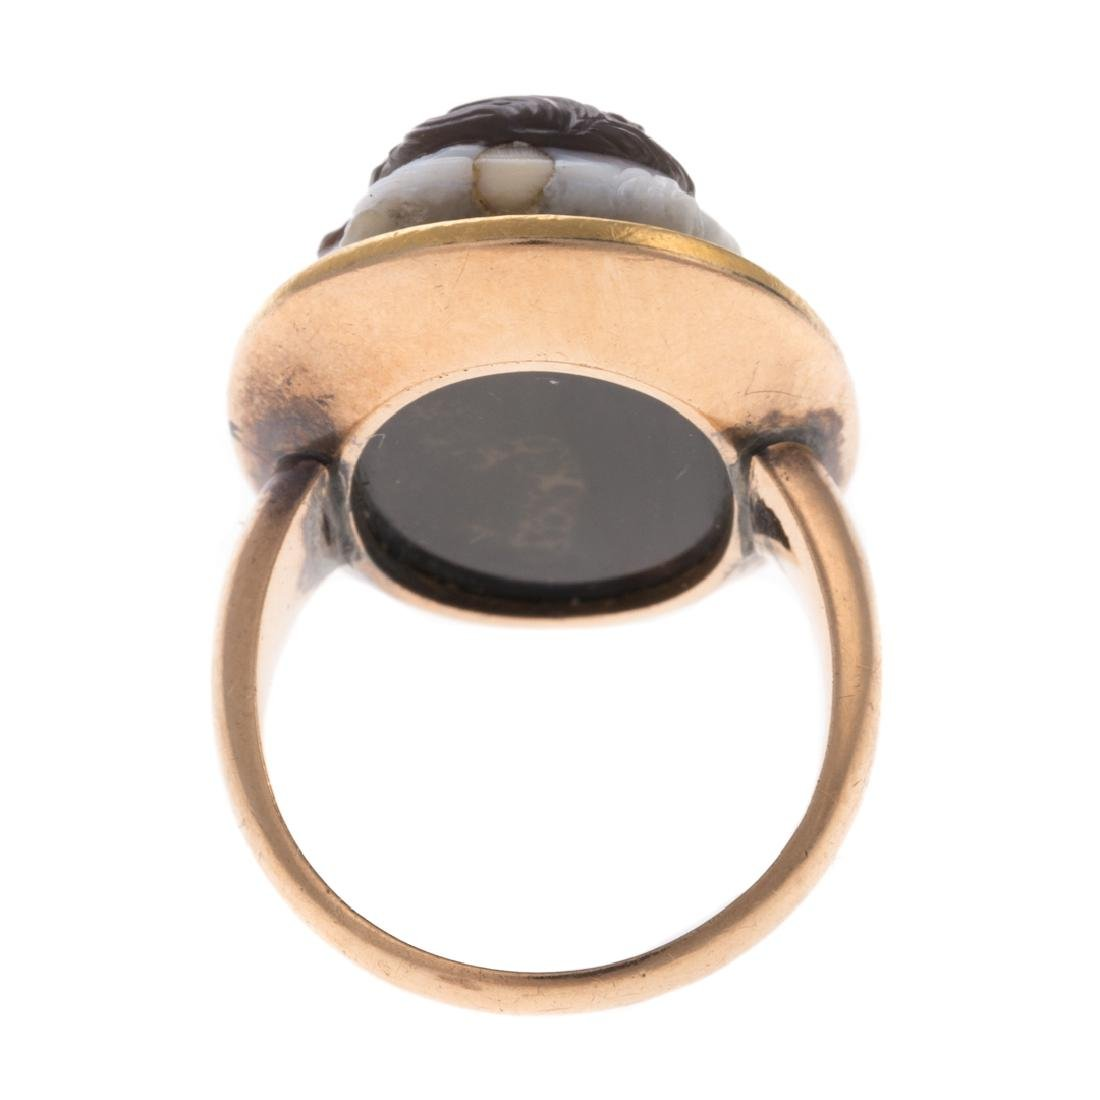 A Double Cameo Sardonyx Ring in 14K Gold - 4